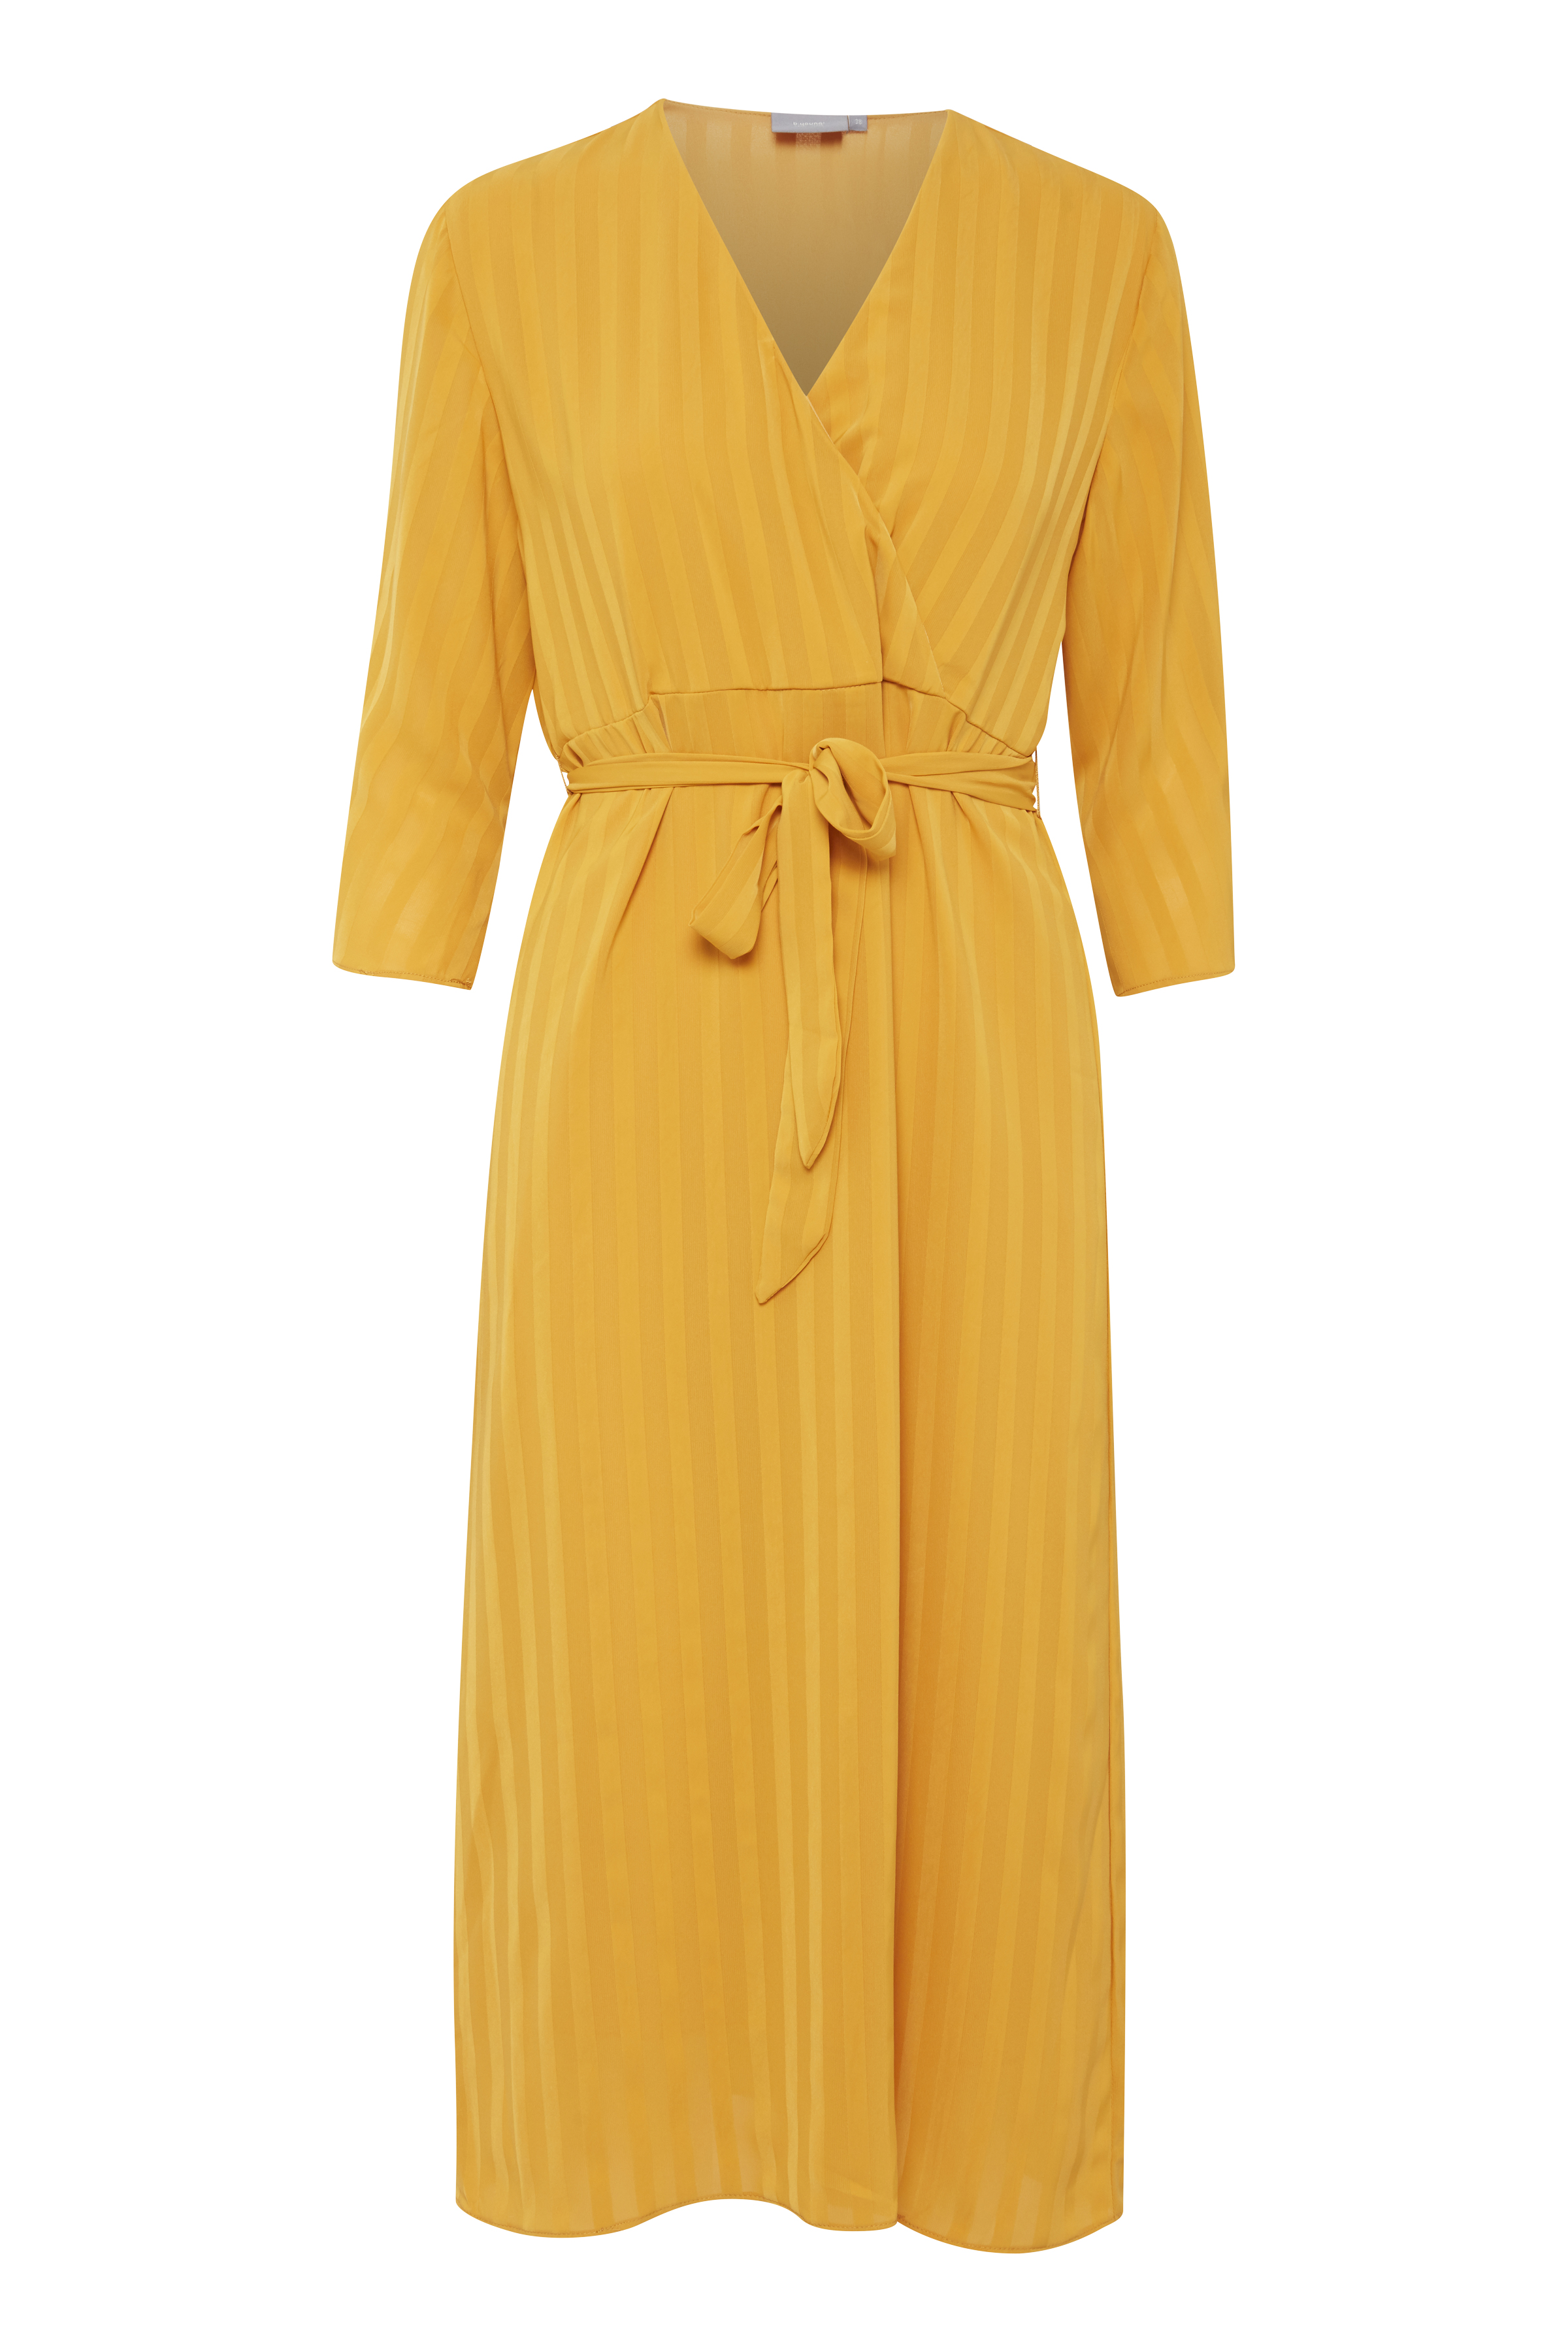 Ochre Yellow Dress from b.young – Buy Ochre Yellow Dress from size 36-44 here